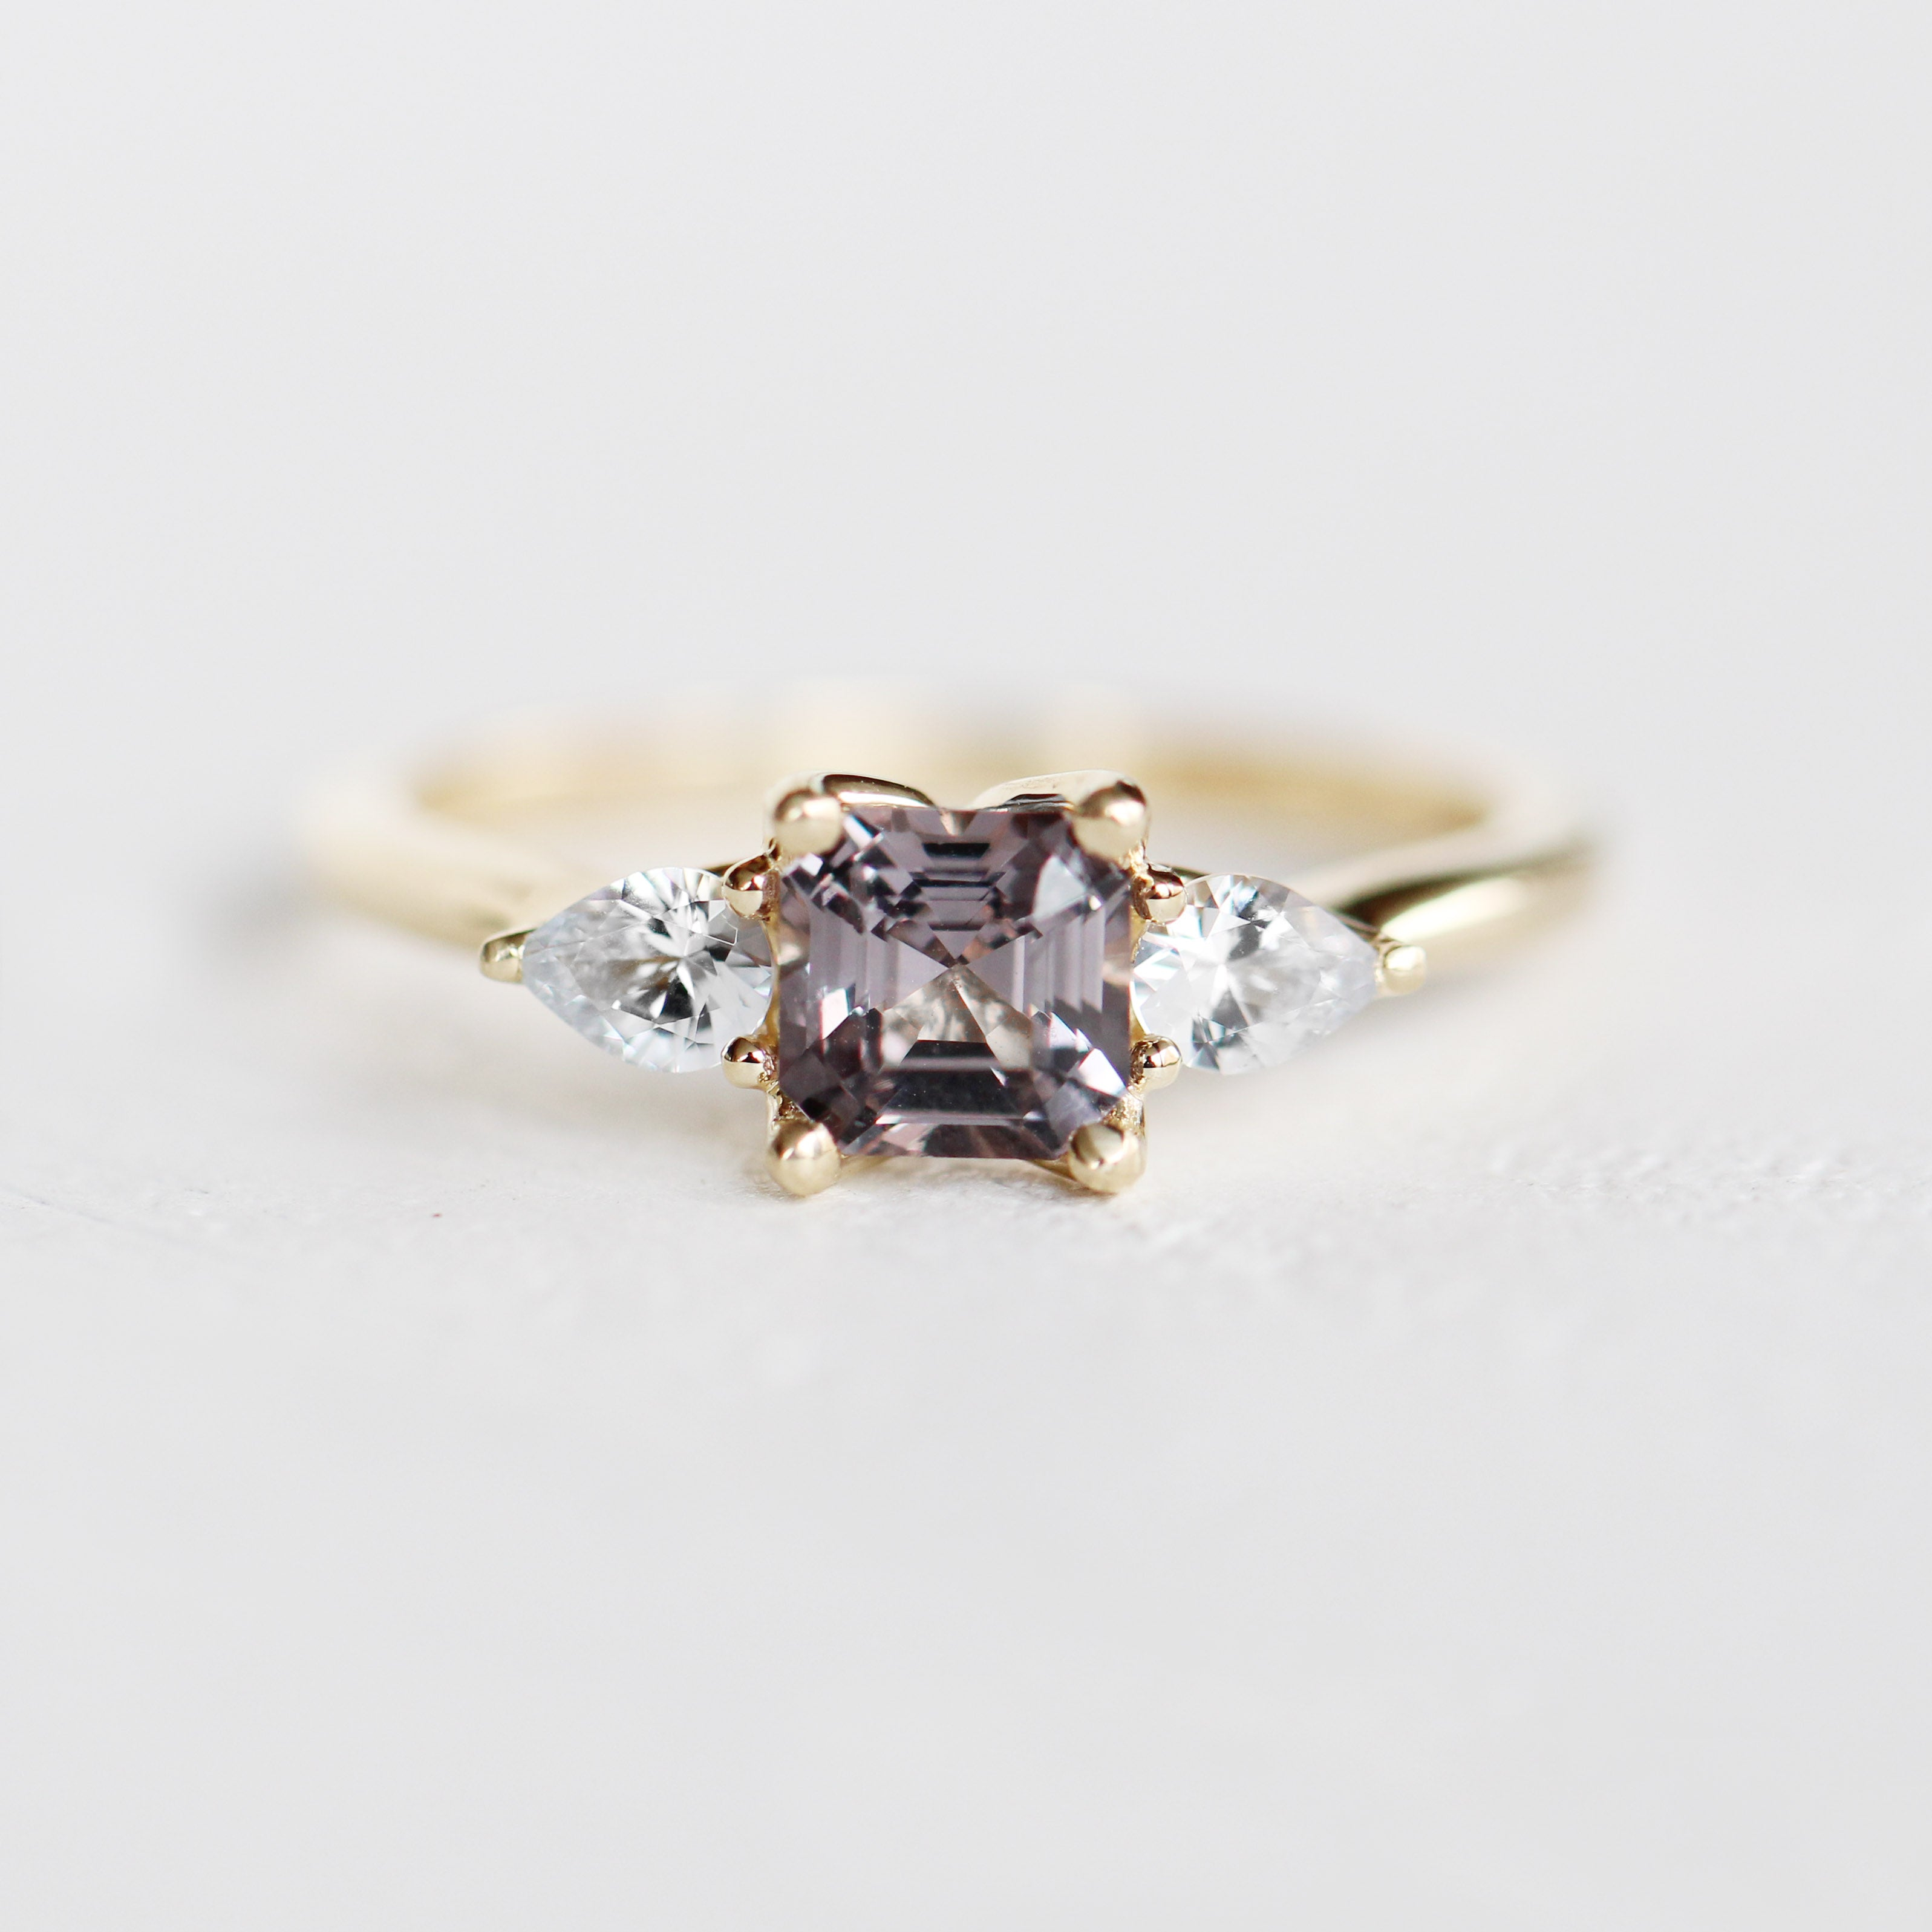 Oleander Setting with an Asscher Cut Spinel and White Sapphire in 14k Yellow Gold - Ready to Size and Ship